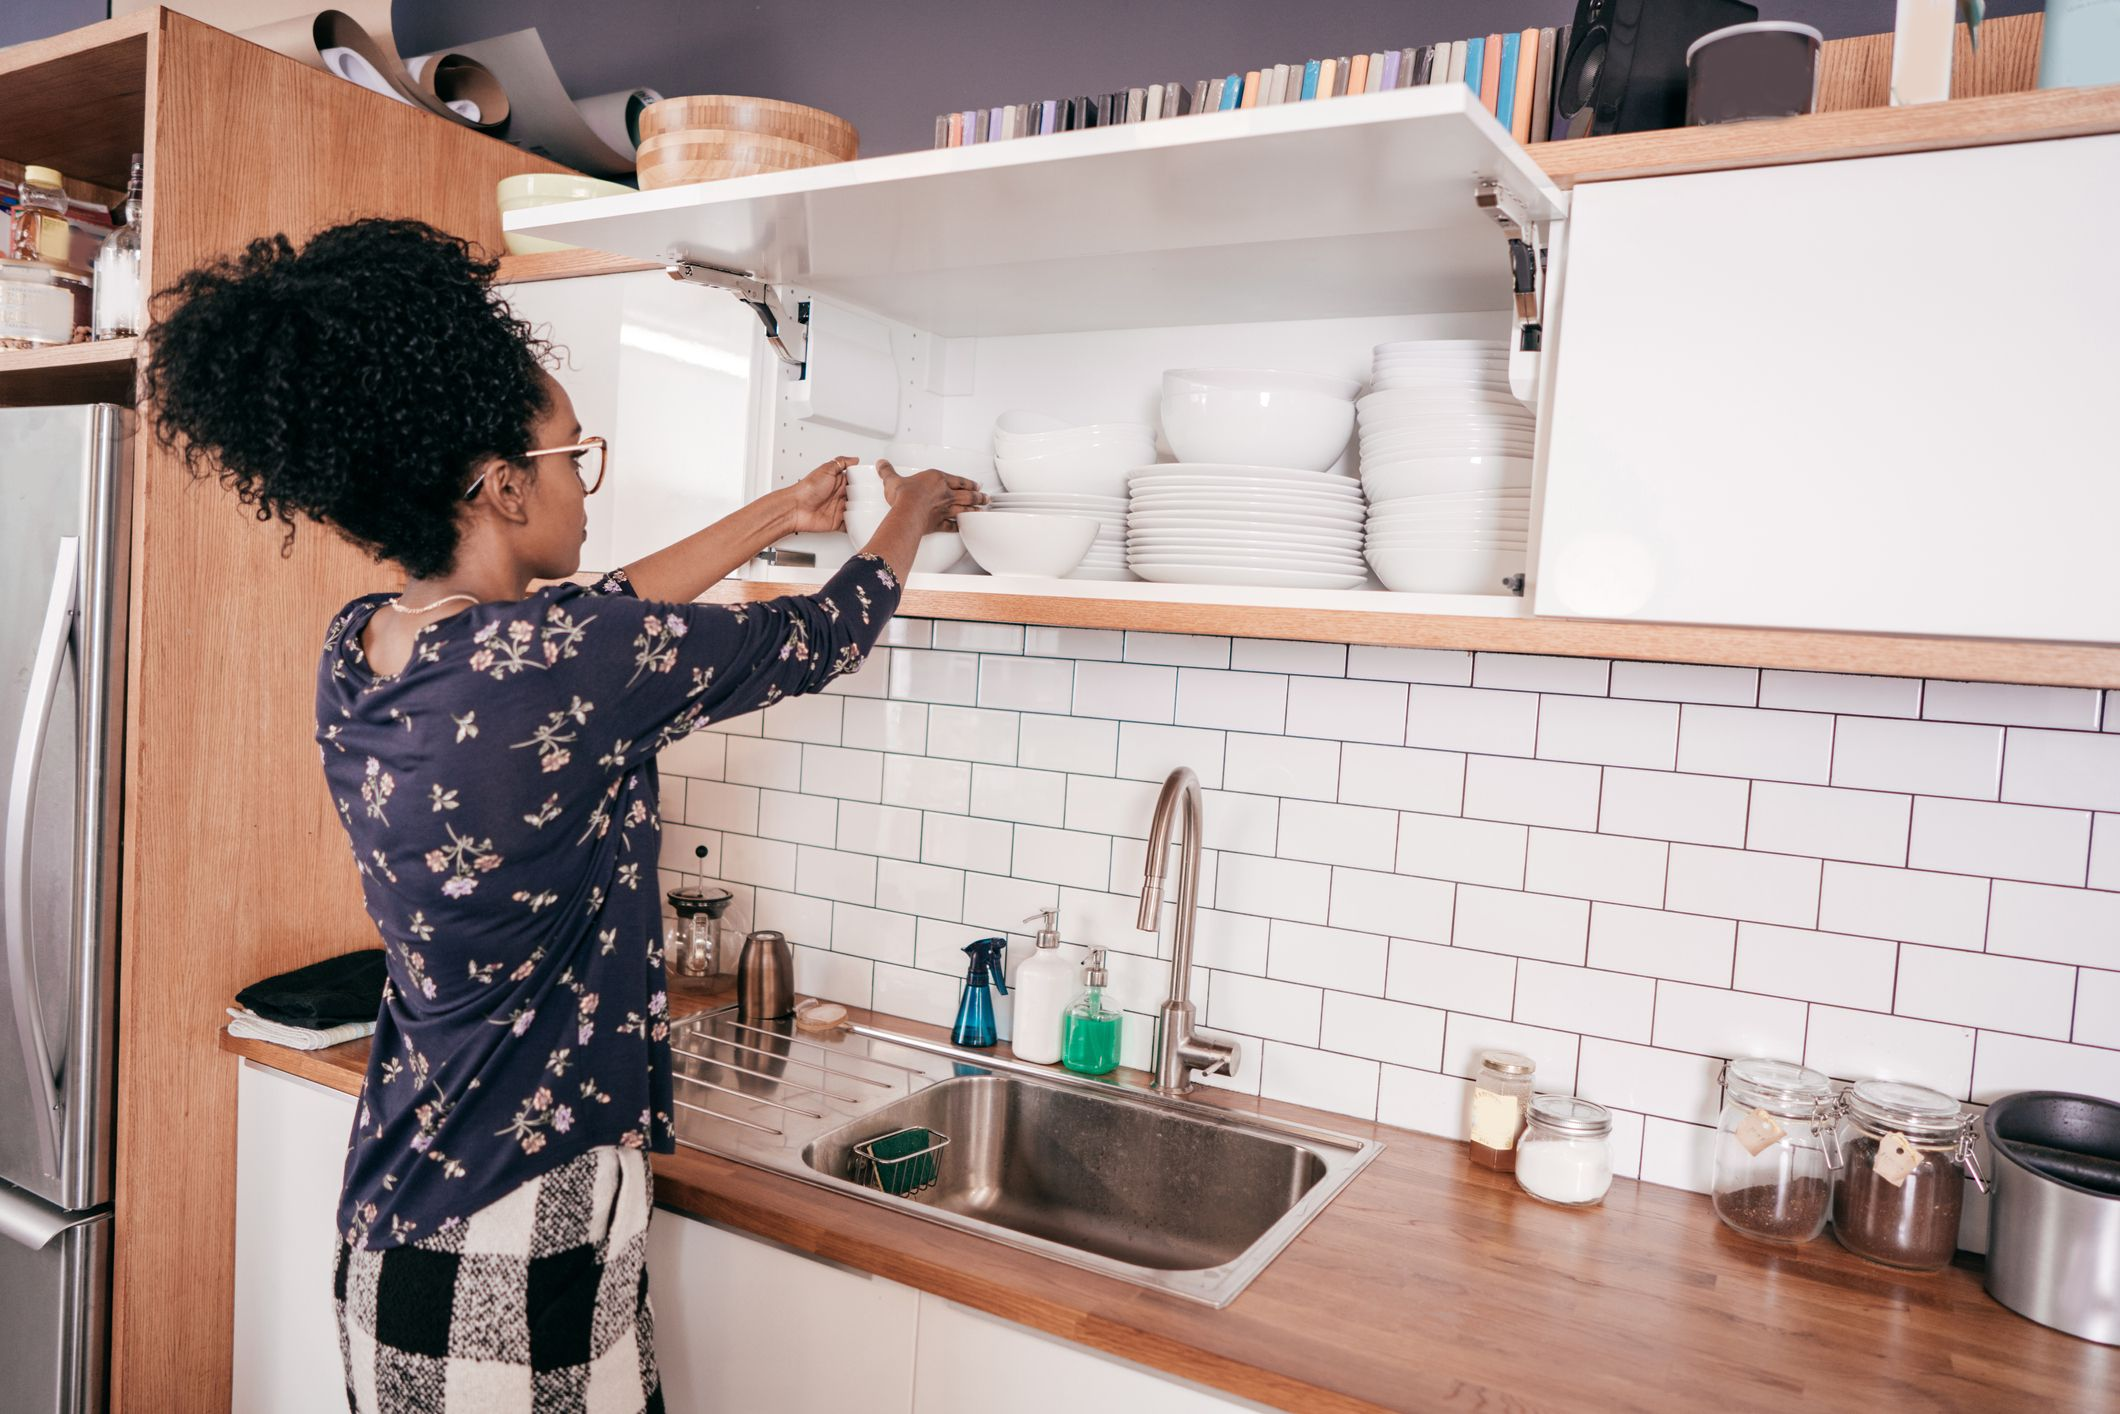 16 Organizing Tips That the Professionals Swear By